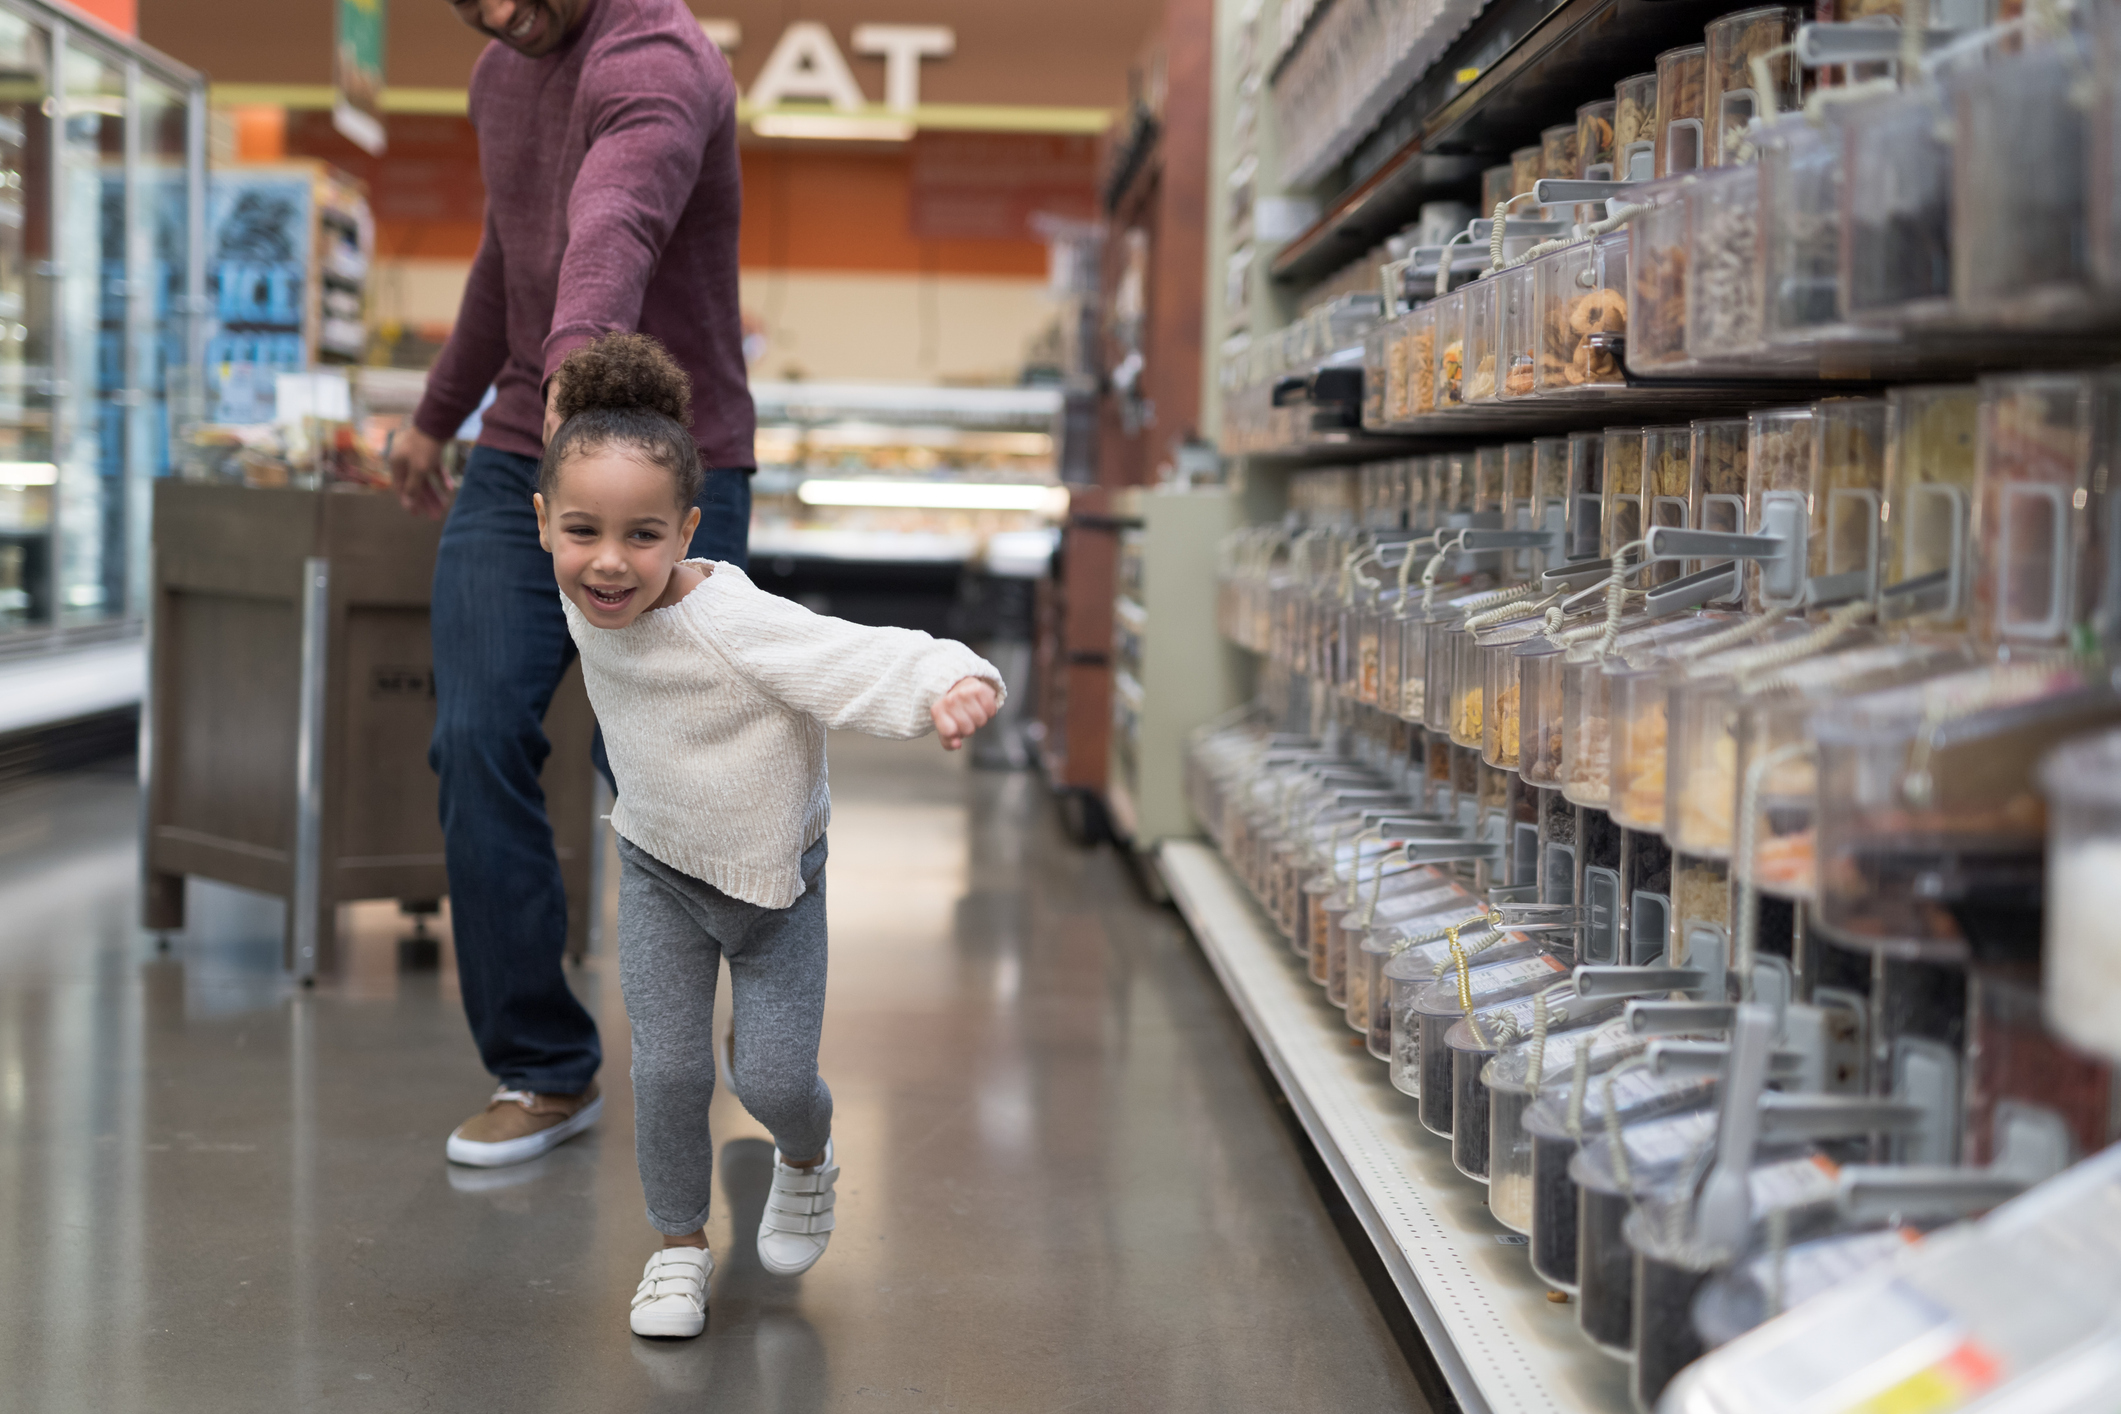 A pre-school age tugs her father along at the grocery store.